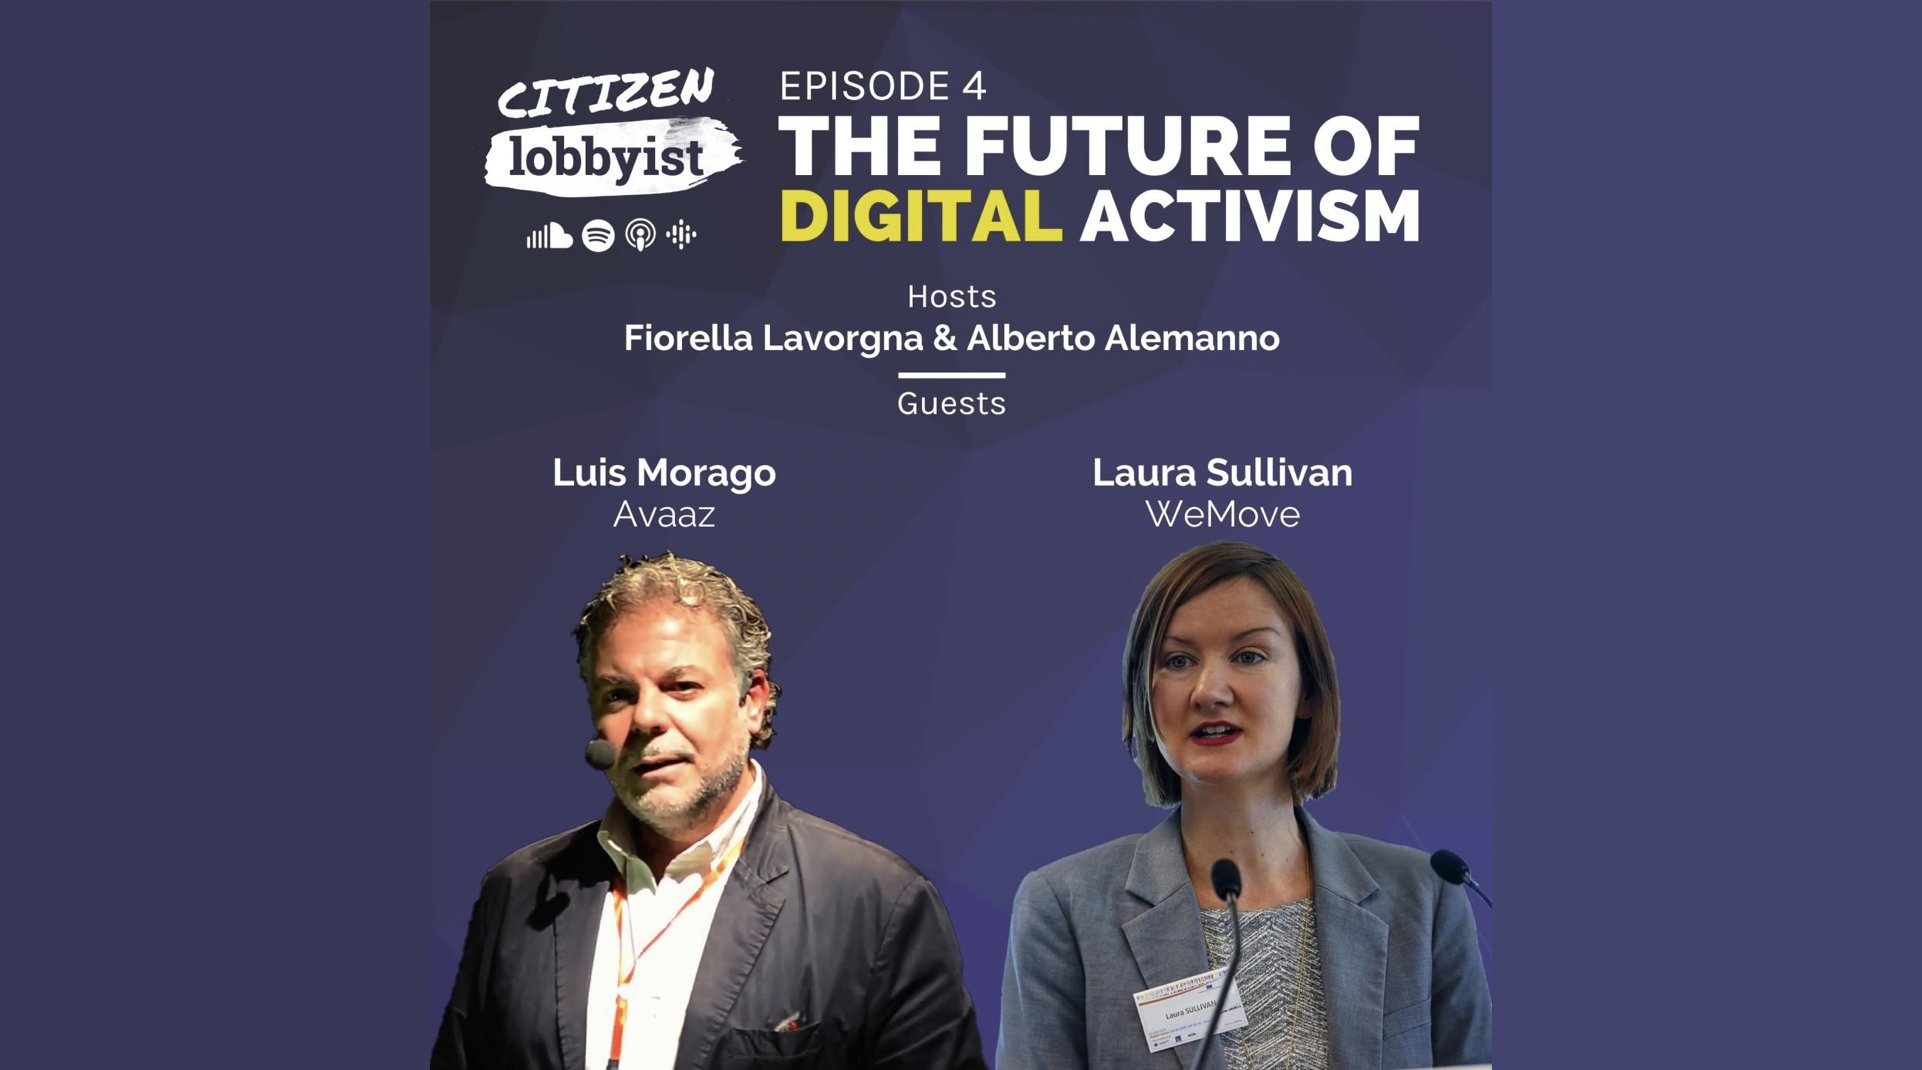 podcast_citizen_lobbyist_digital_activism